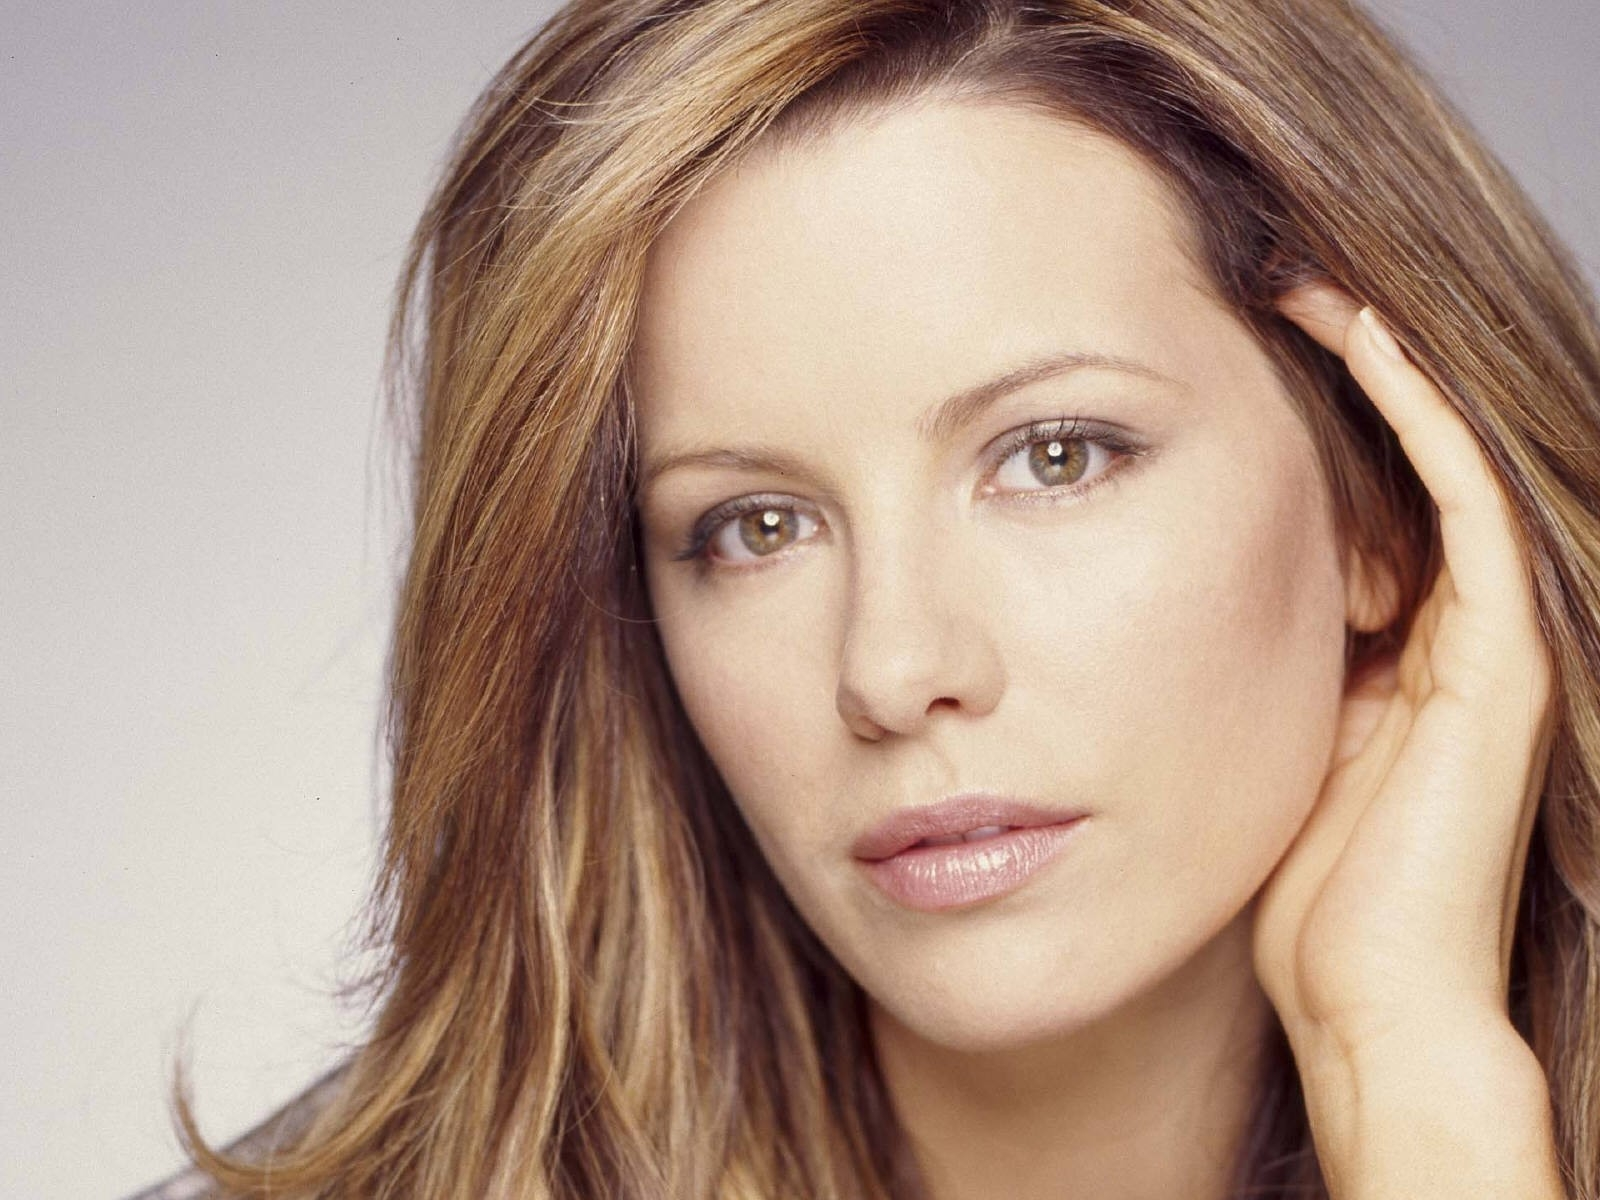 Wallpaper di Kate Beckinsale - 34